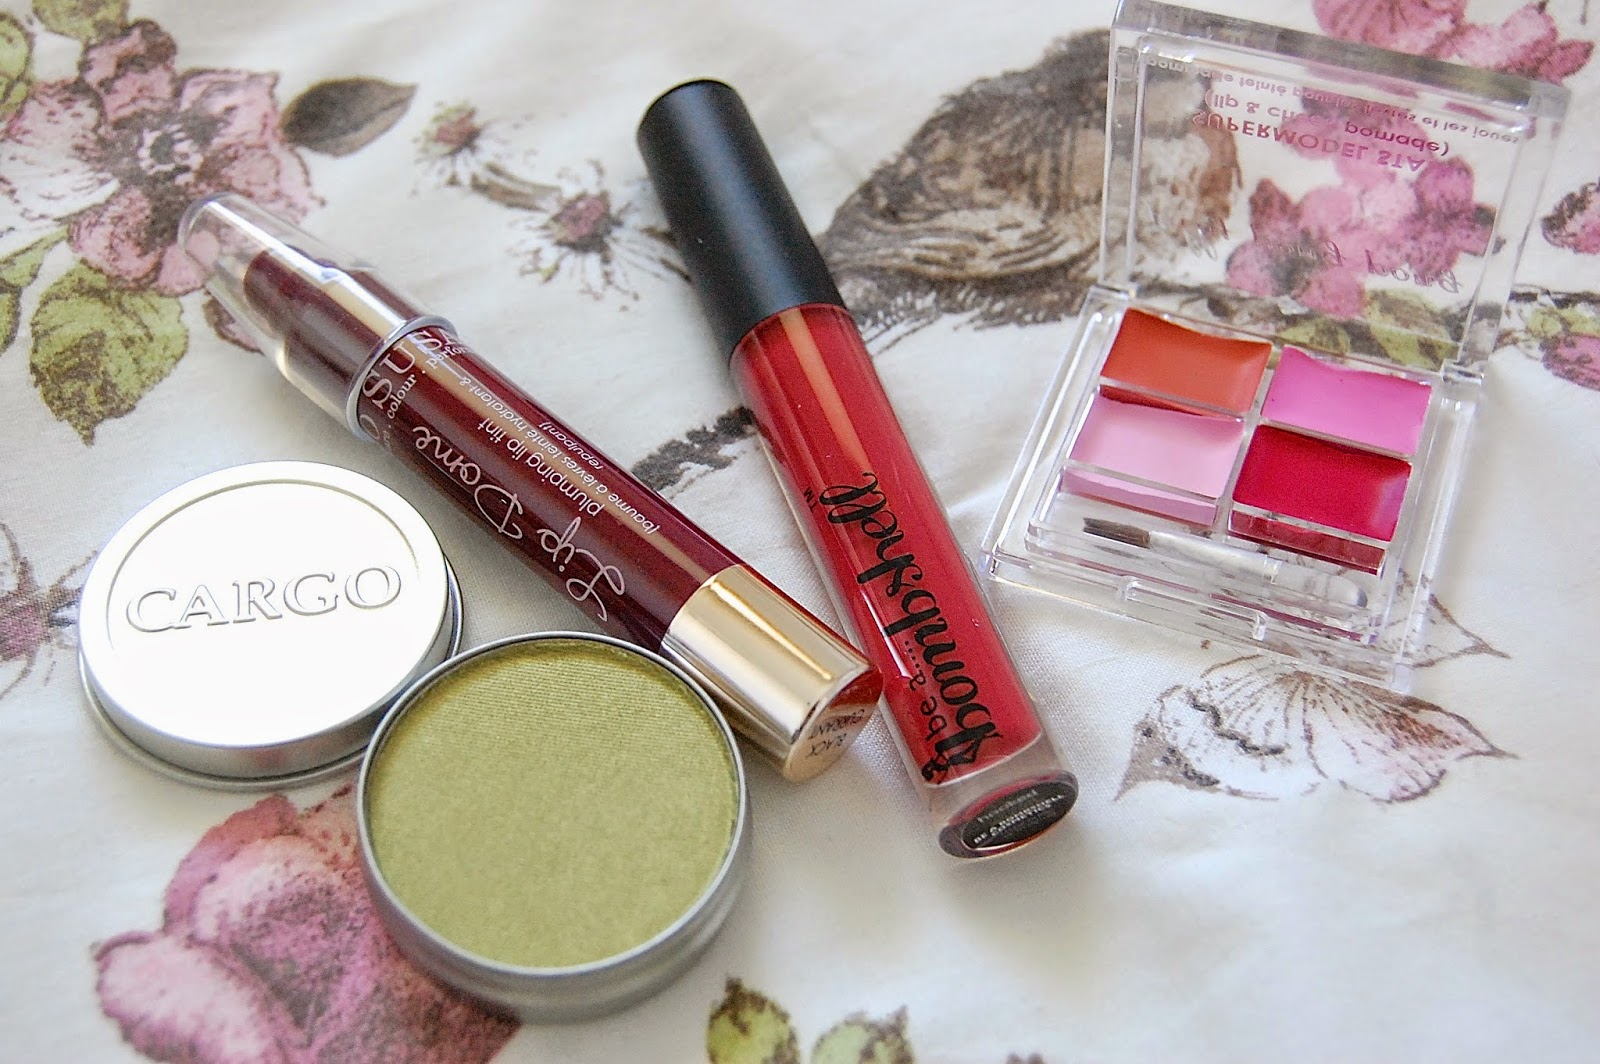 lip monthly, be a bombshell, cargo, jelly pong pong, so susan, lipstick, lipgloss, make up, beauty, bbloggers, blog